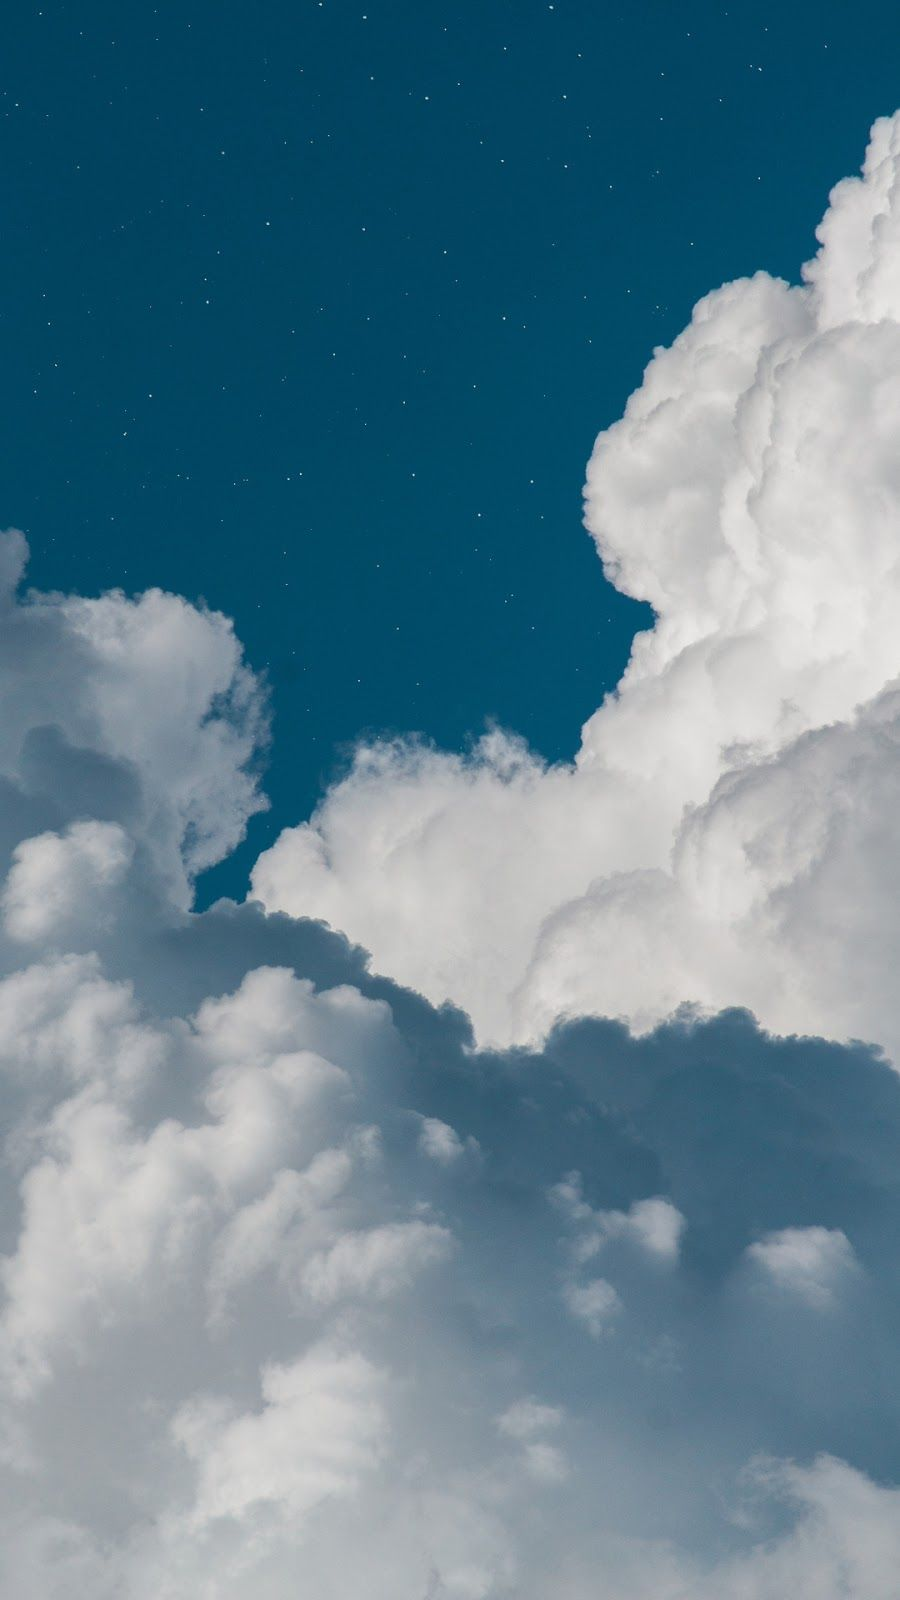 Wallpaper Iphone Aesthetic Cloud Total Update